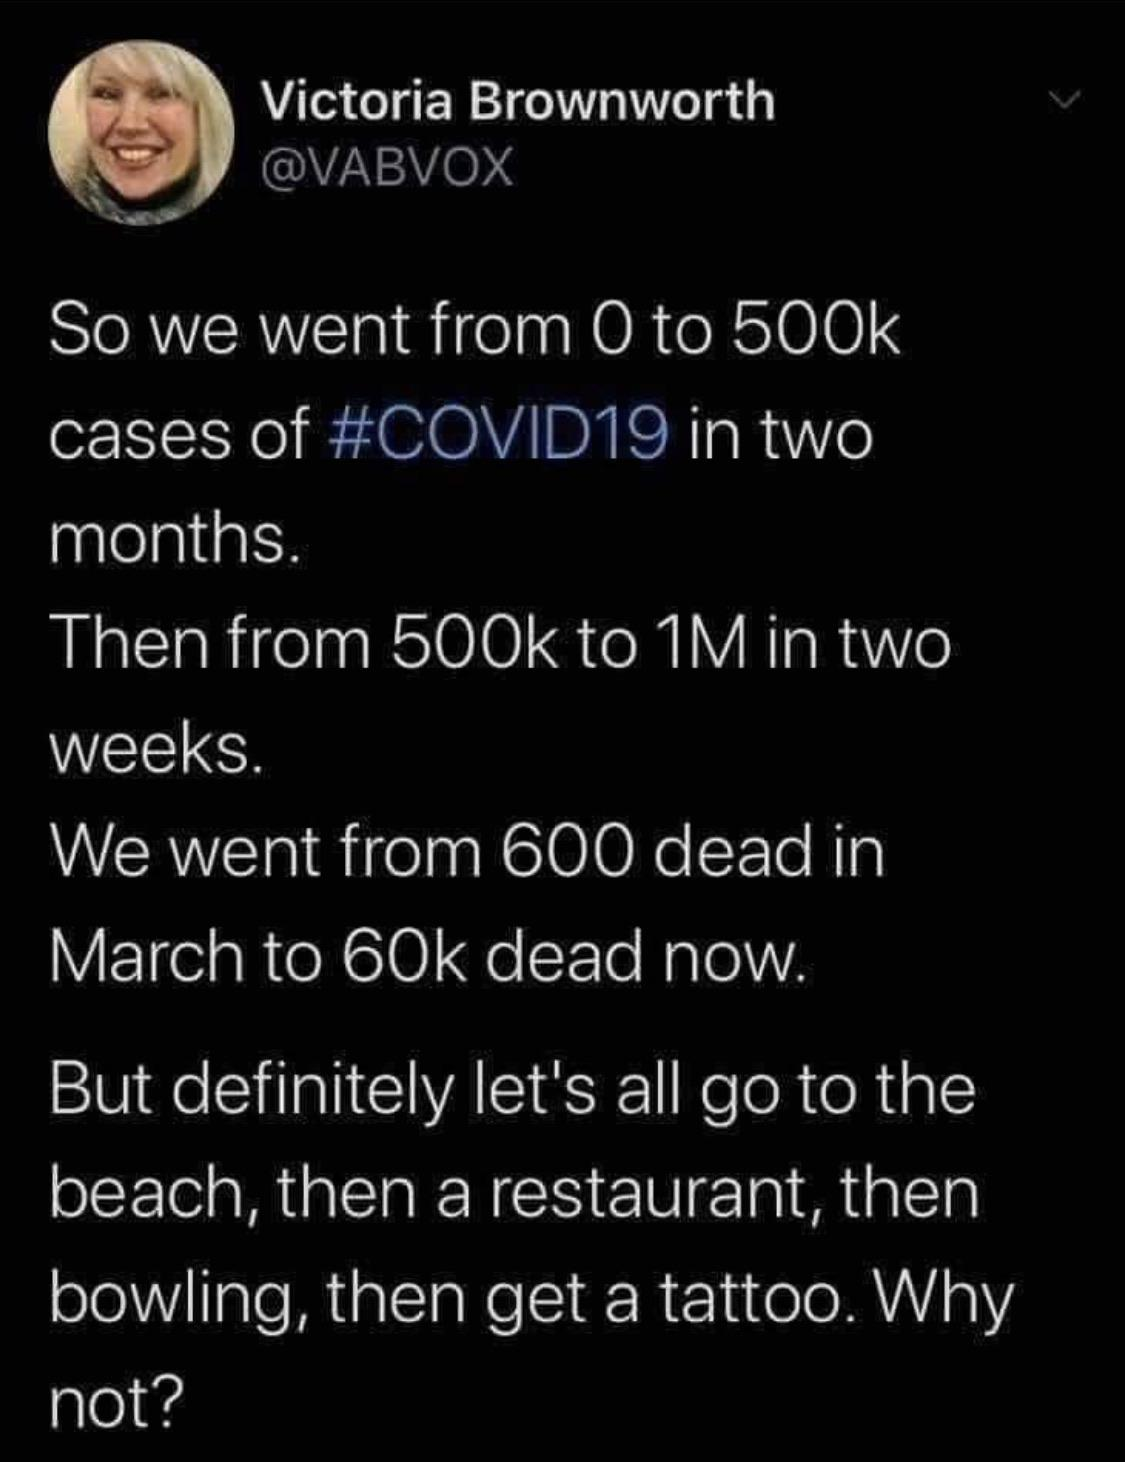 Political, Republicans, Trump, Democrats, GOP, Americans Political Memes Political, Republicans, Trump, Democrats, GOP, Americans text: Victoria Brownworth @VABVOX So we went from O to 500k cases of #COVlD19 in two months. Then from 500k to 1M in two weeks. We went from 600 dead in March to 60k dead now. But definitely let's all go to the beach, then a restaurant, then bowling, then get a tattoo. Why not?